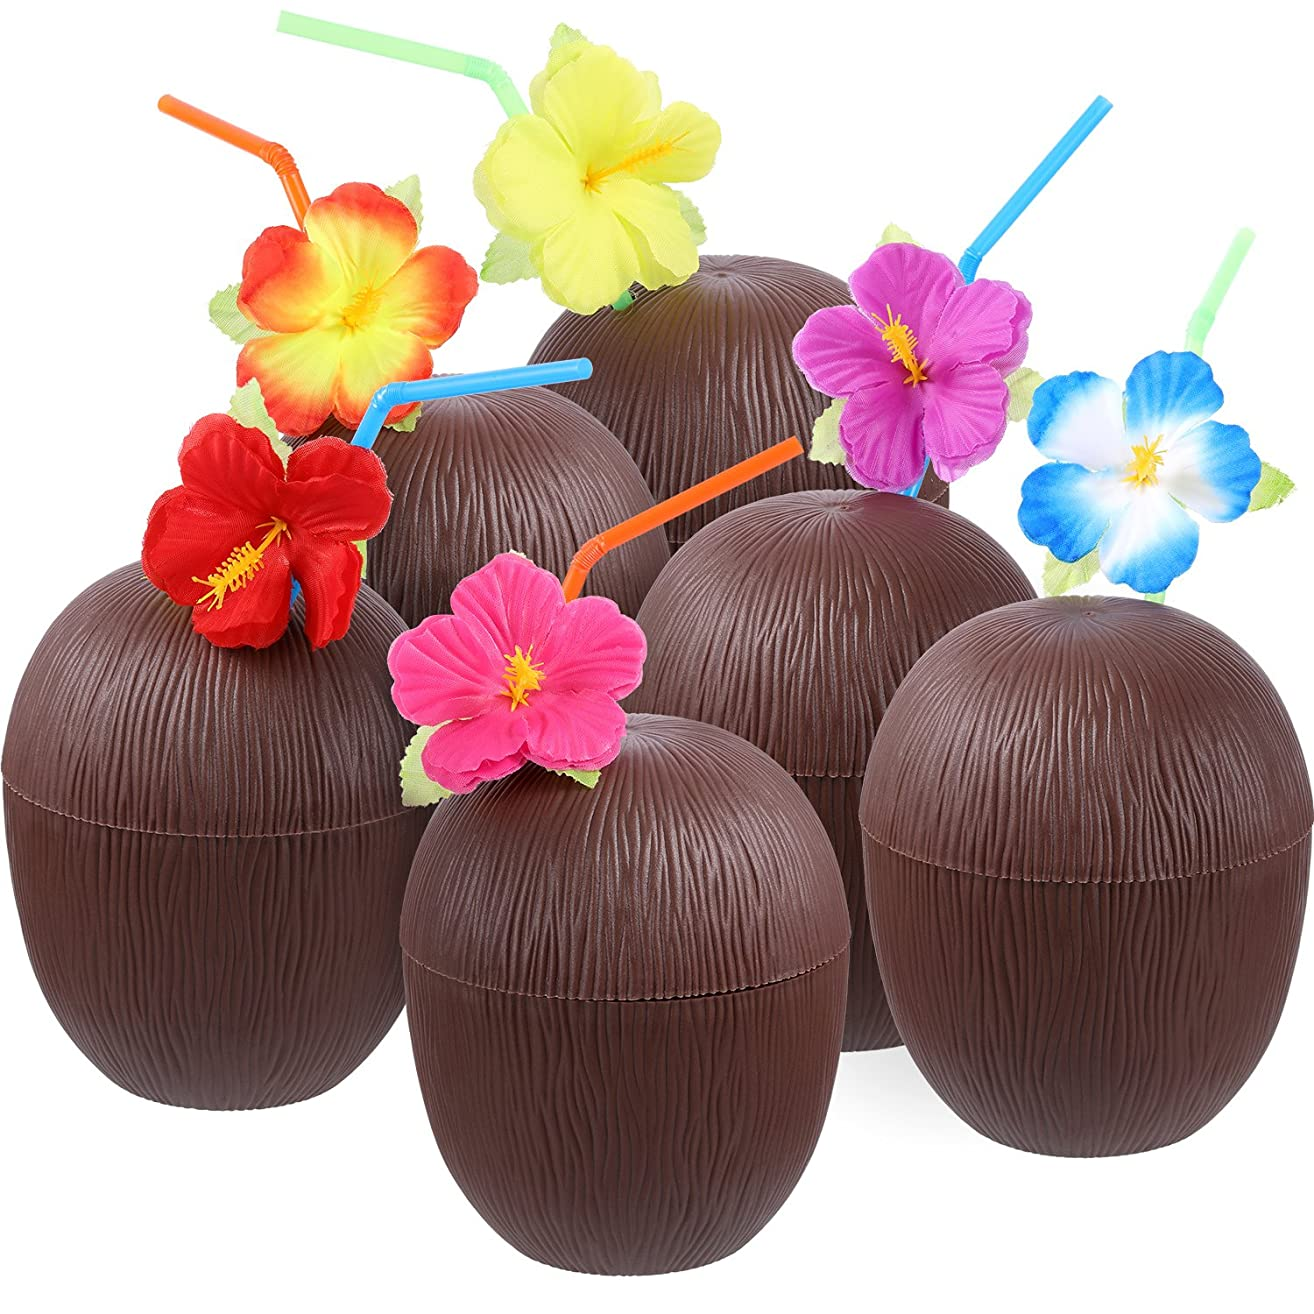 Gejoy 12 Pieces Hawaiian Luau Plastic Coconut Cups with Hibiscus Flower Bendable Straws for Beach Theme Party Supplies